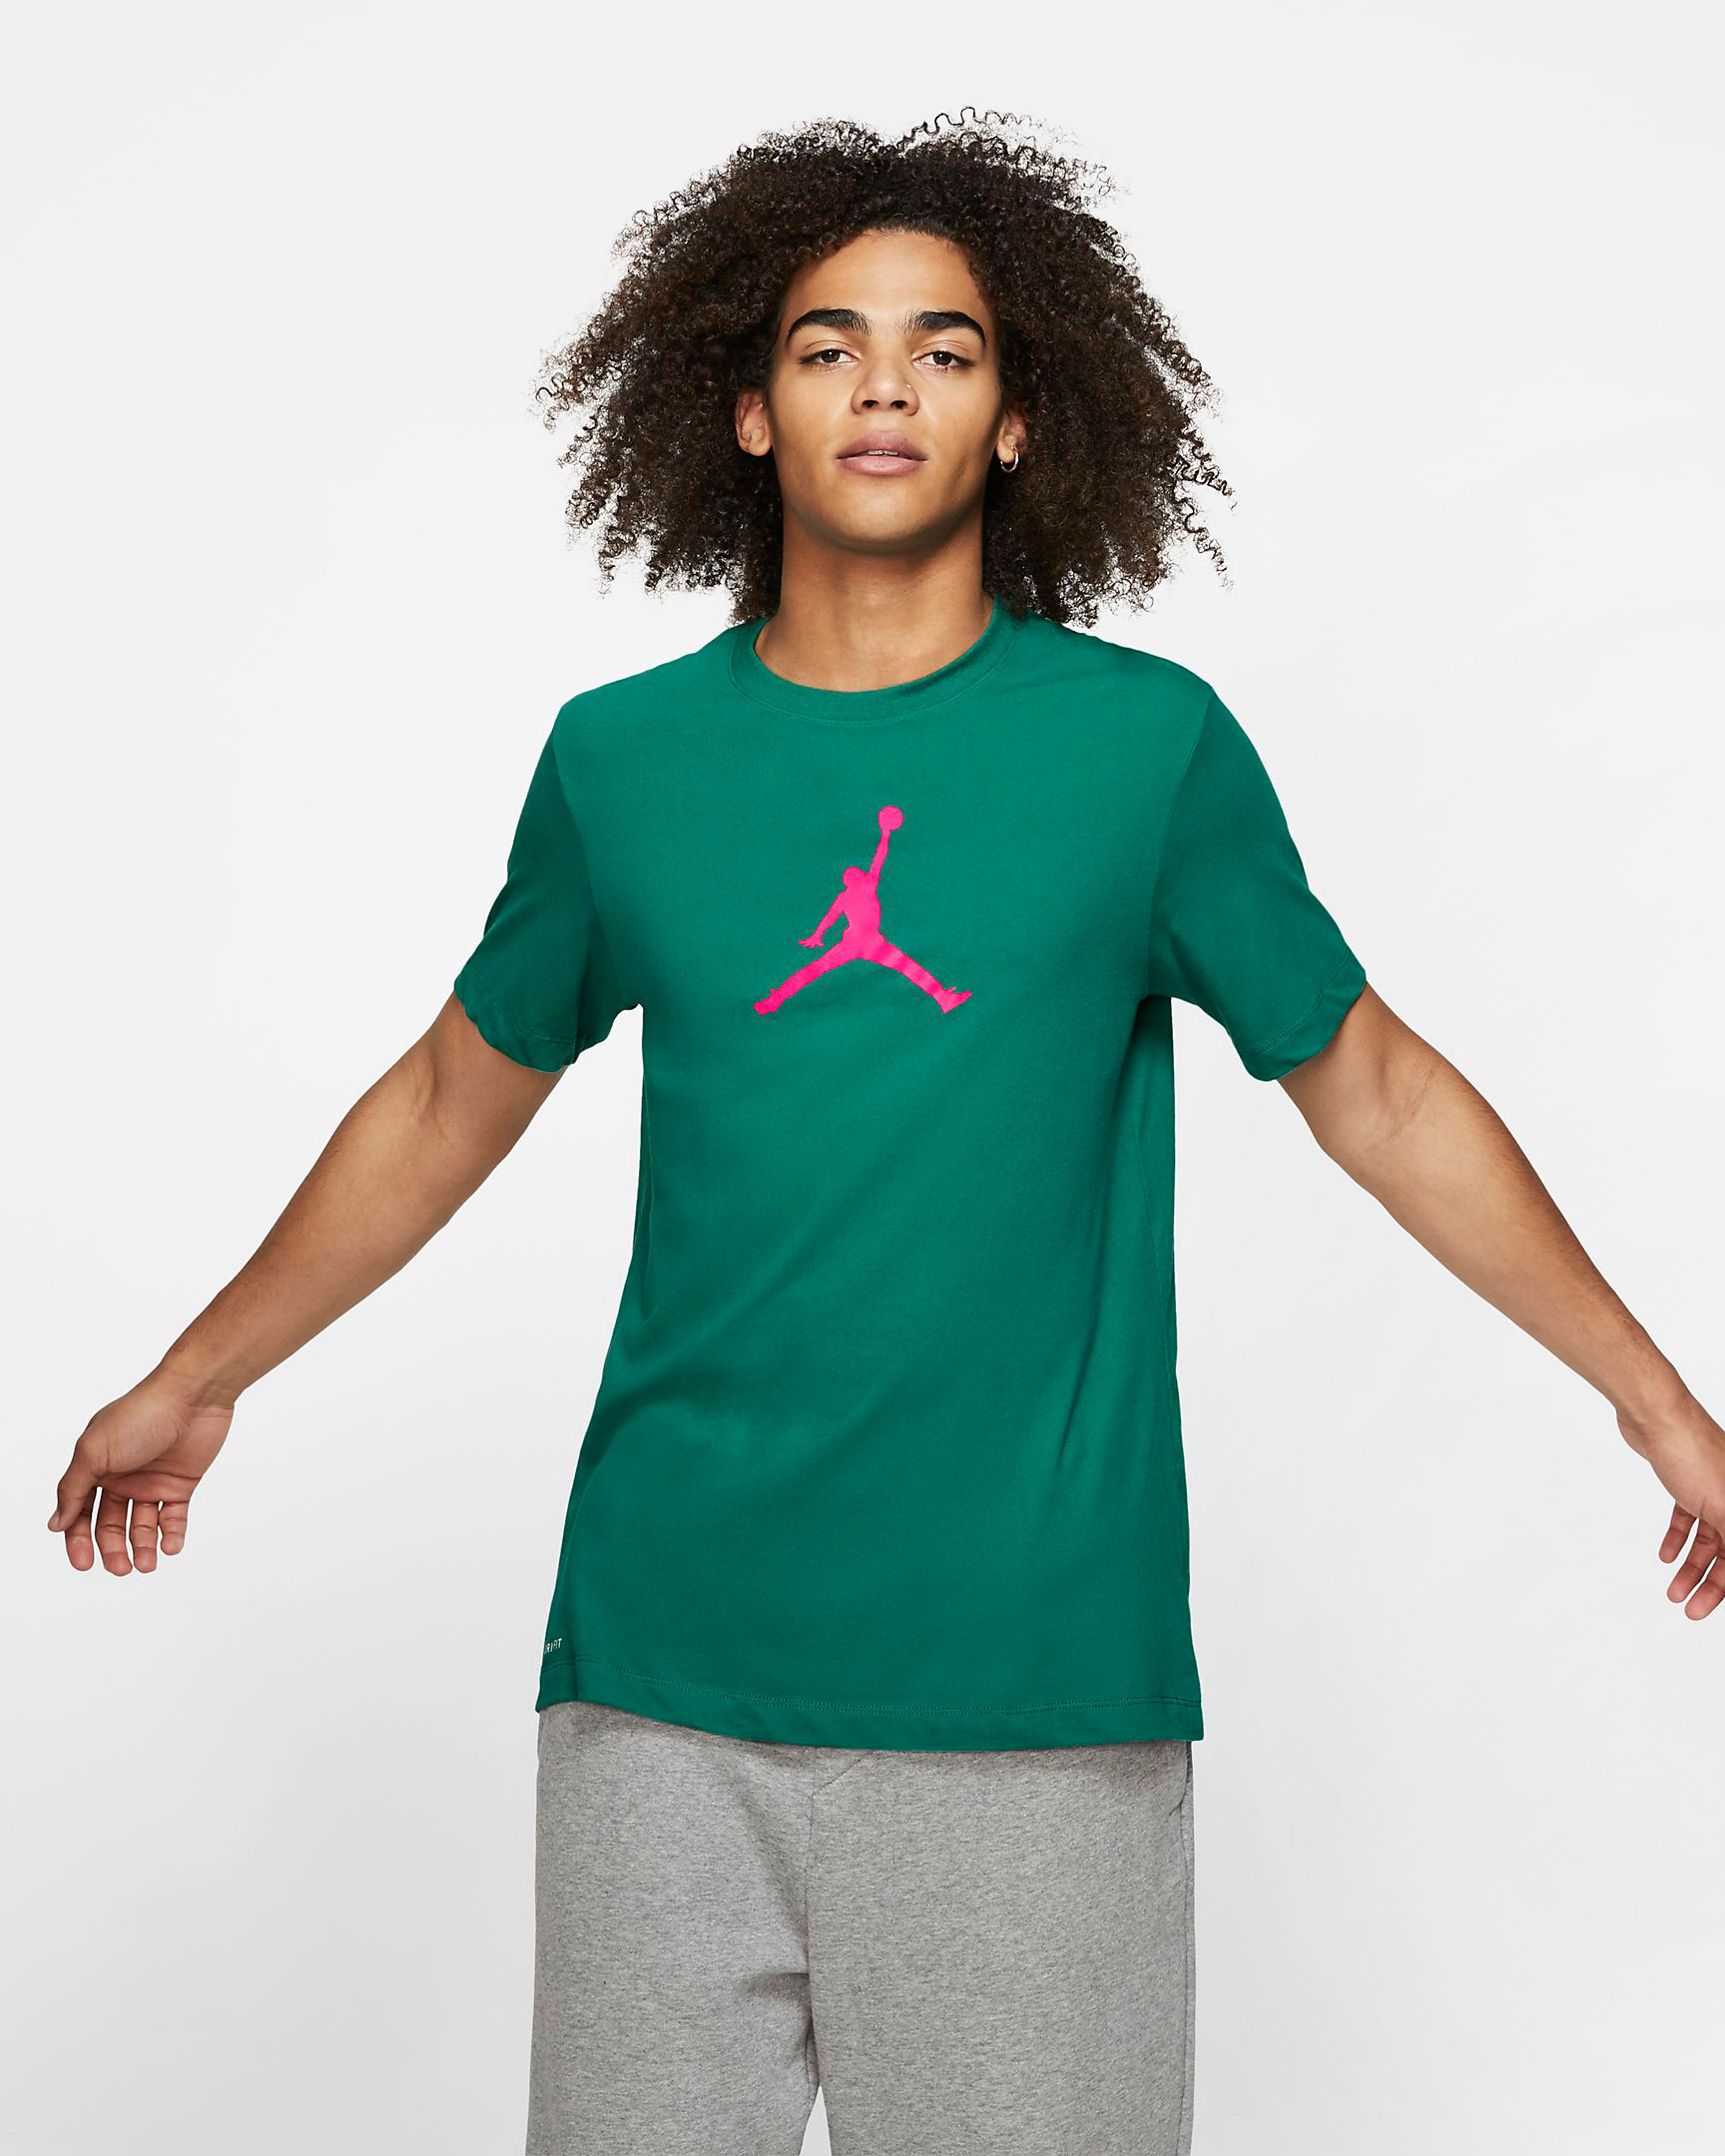 jordan-watermelon-green-pink-shirt-2